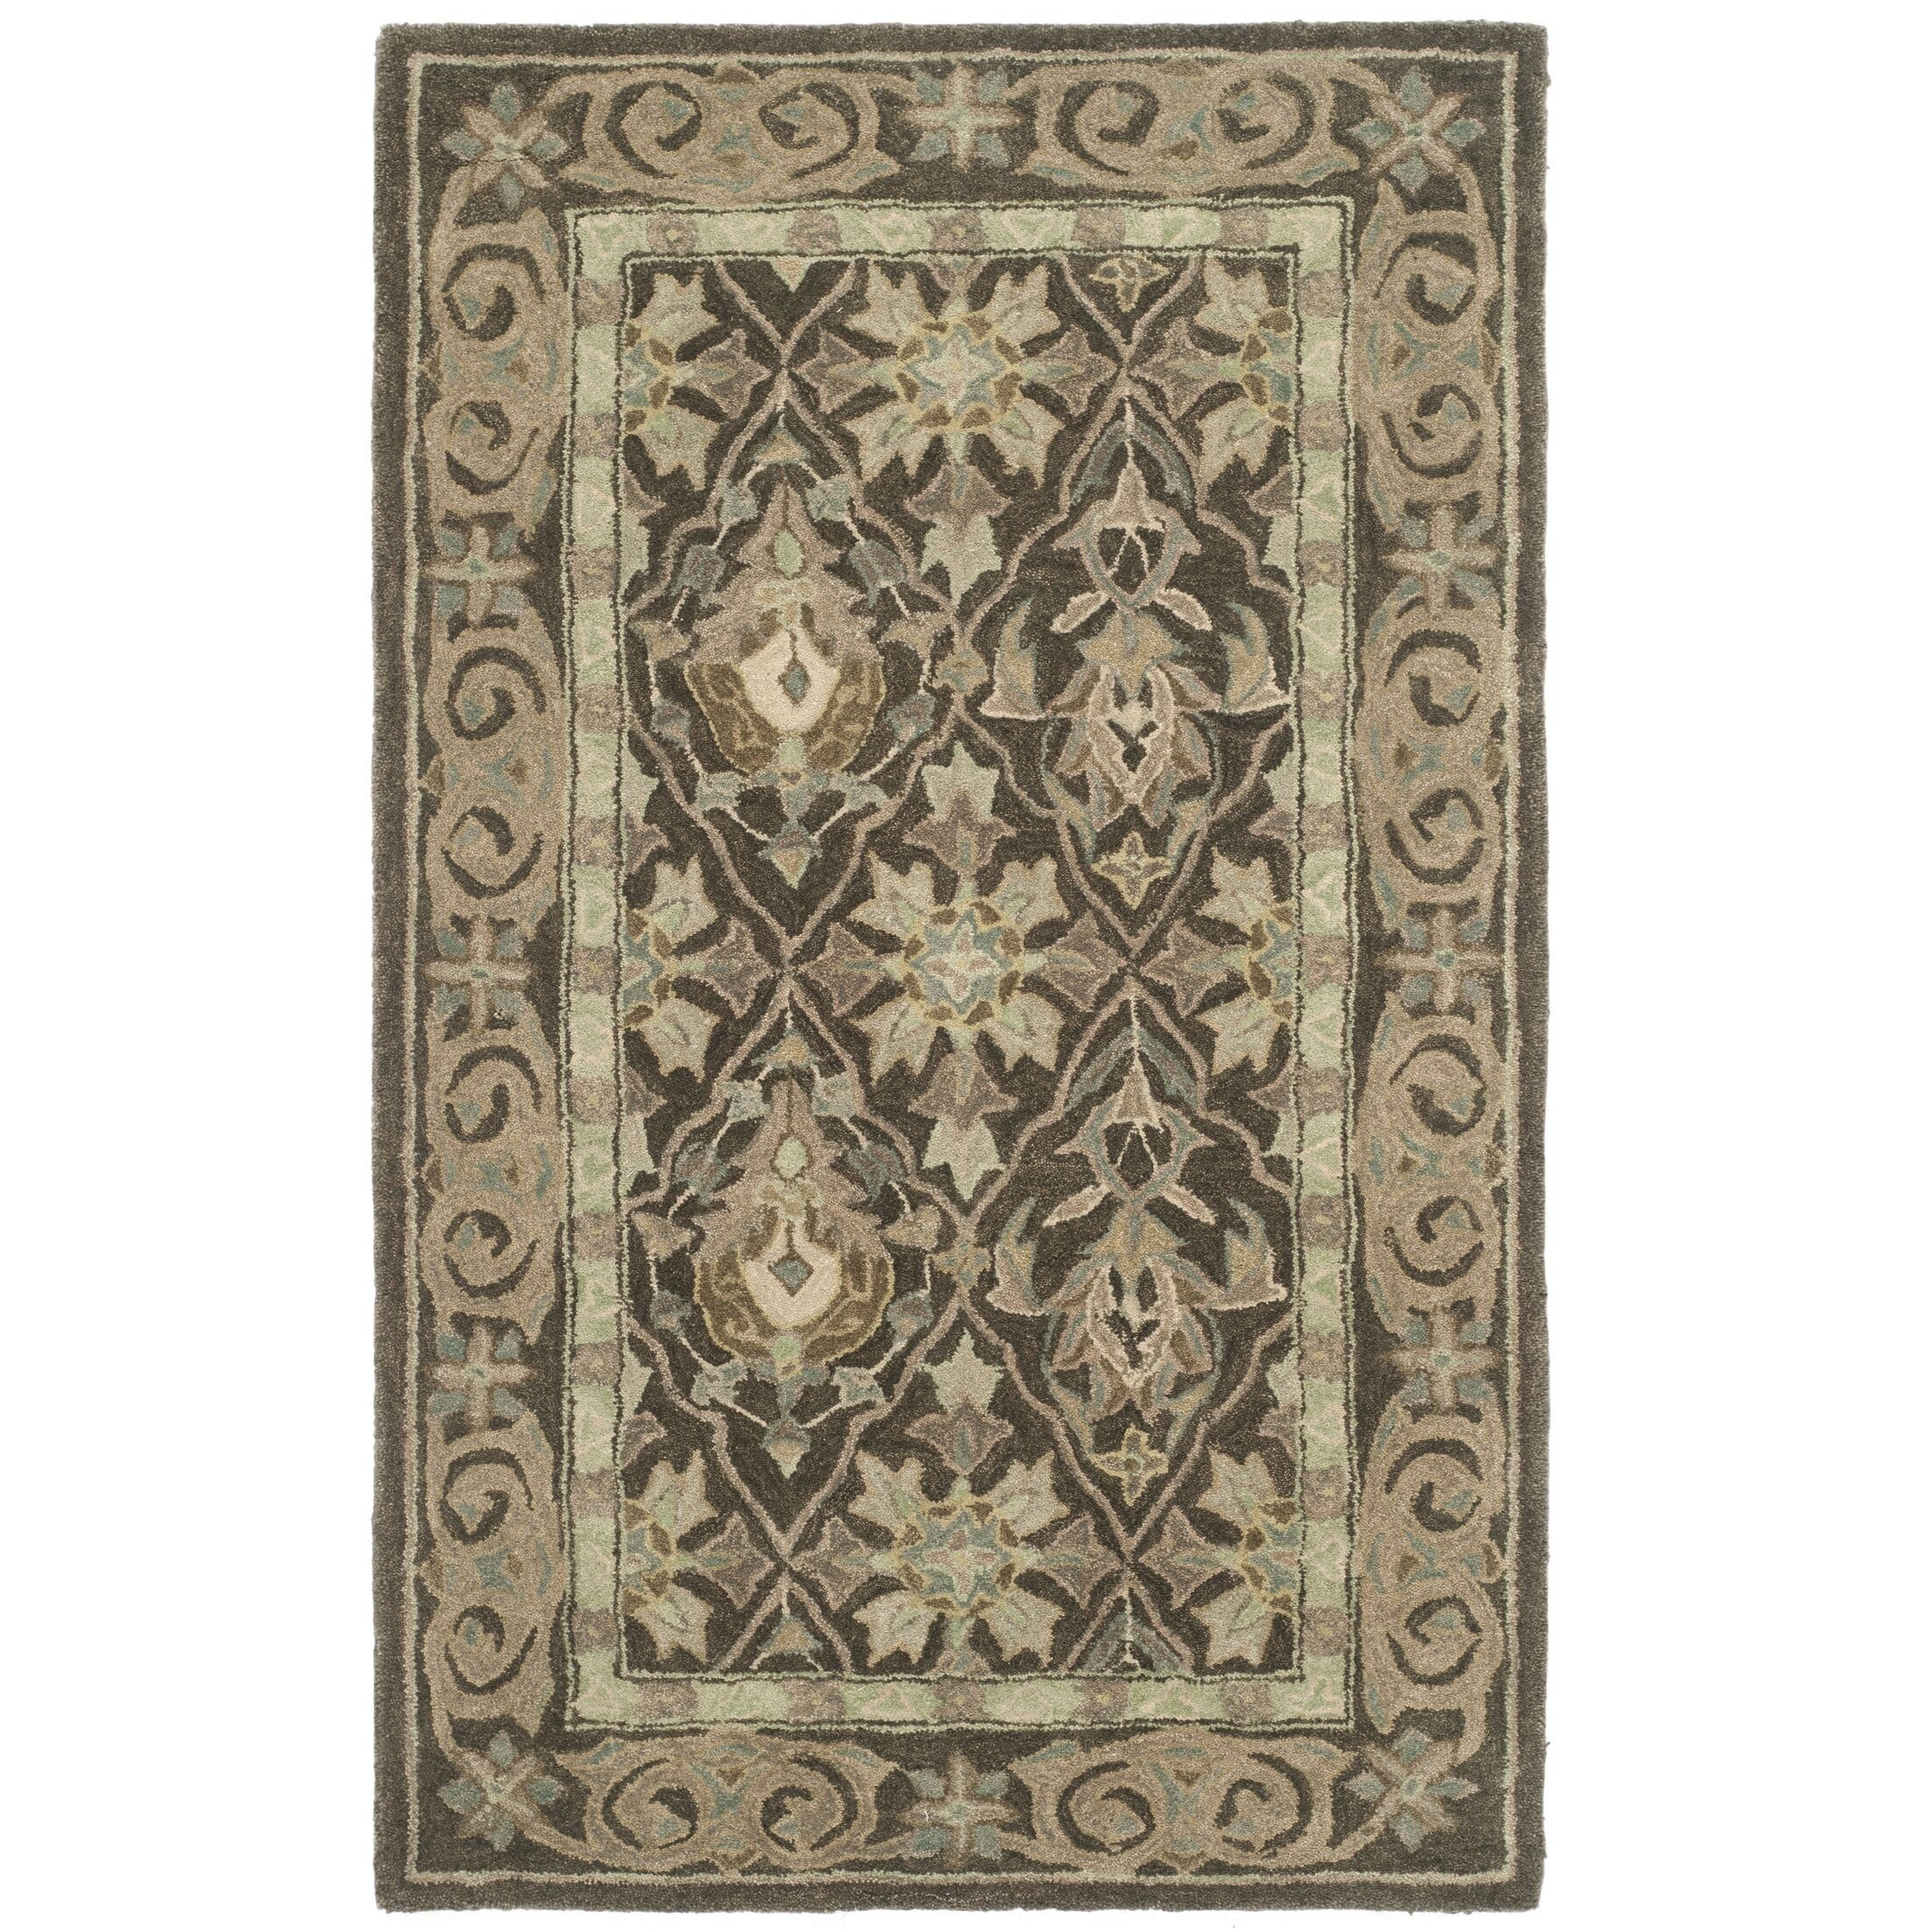 Anatolia Brown/Beige Area Rug Rug Size: Rectangle 6' x 9'